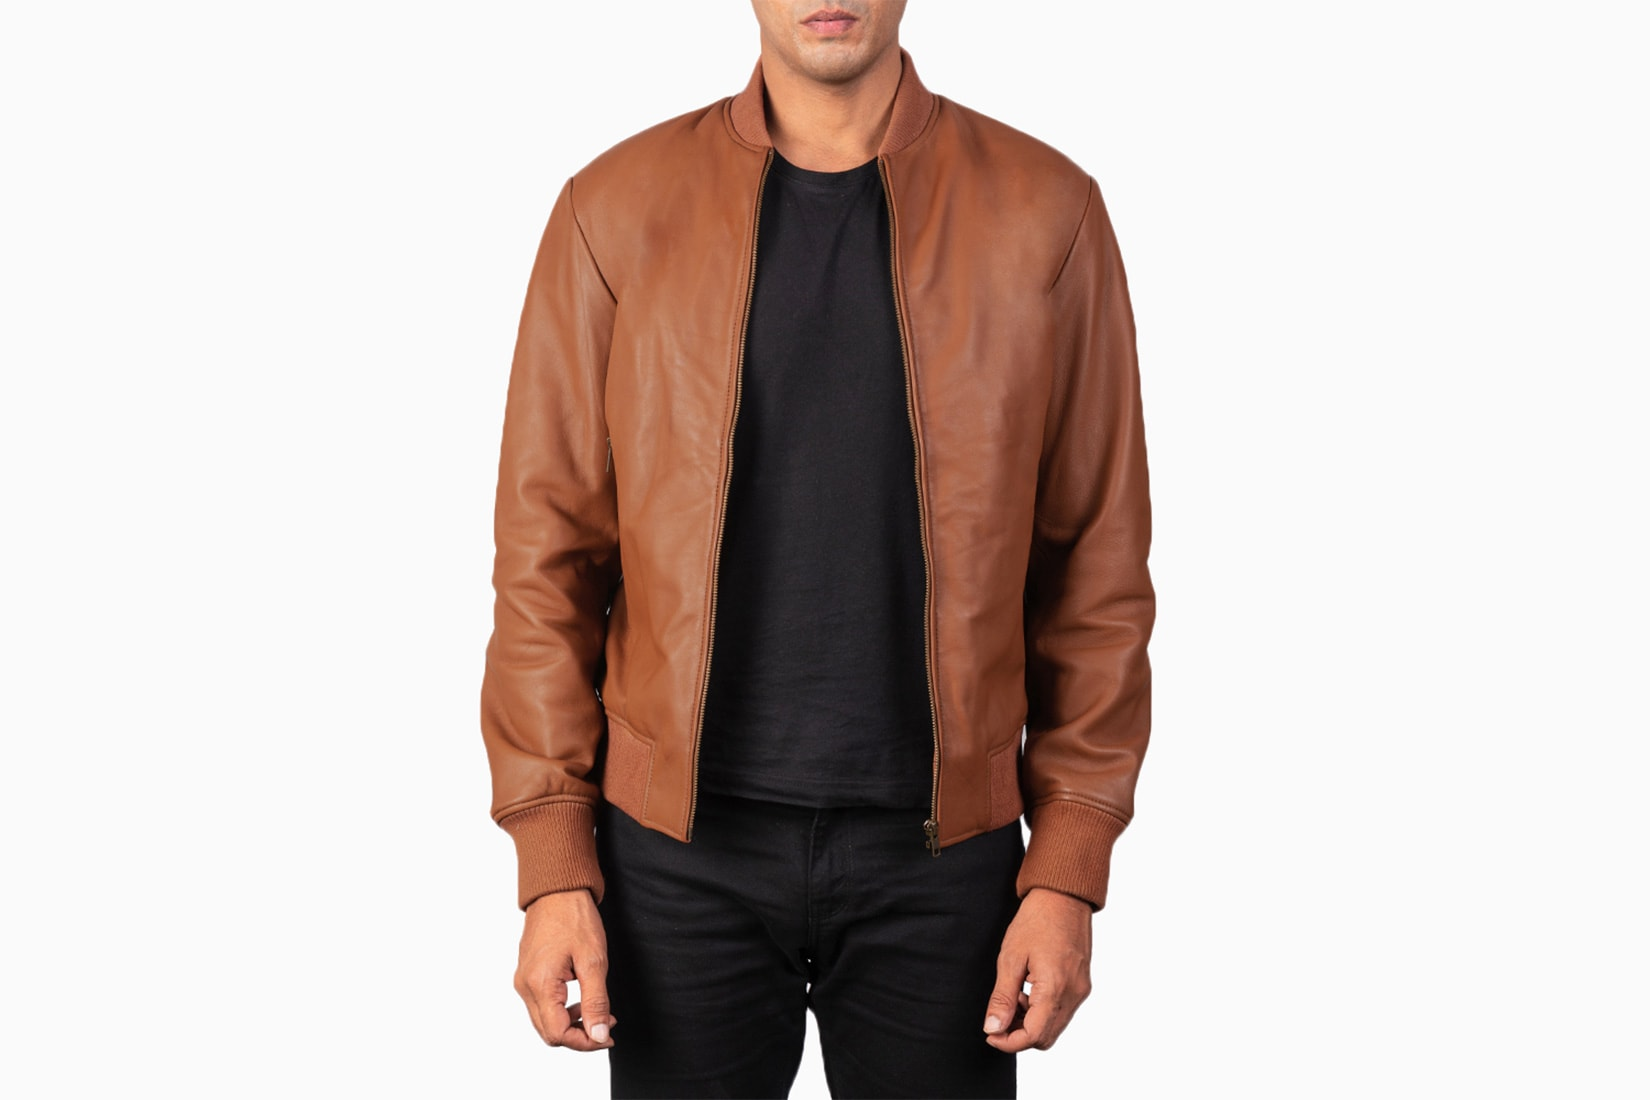 best men bomber jacket maker shane leather review - Luxe Digital